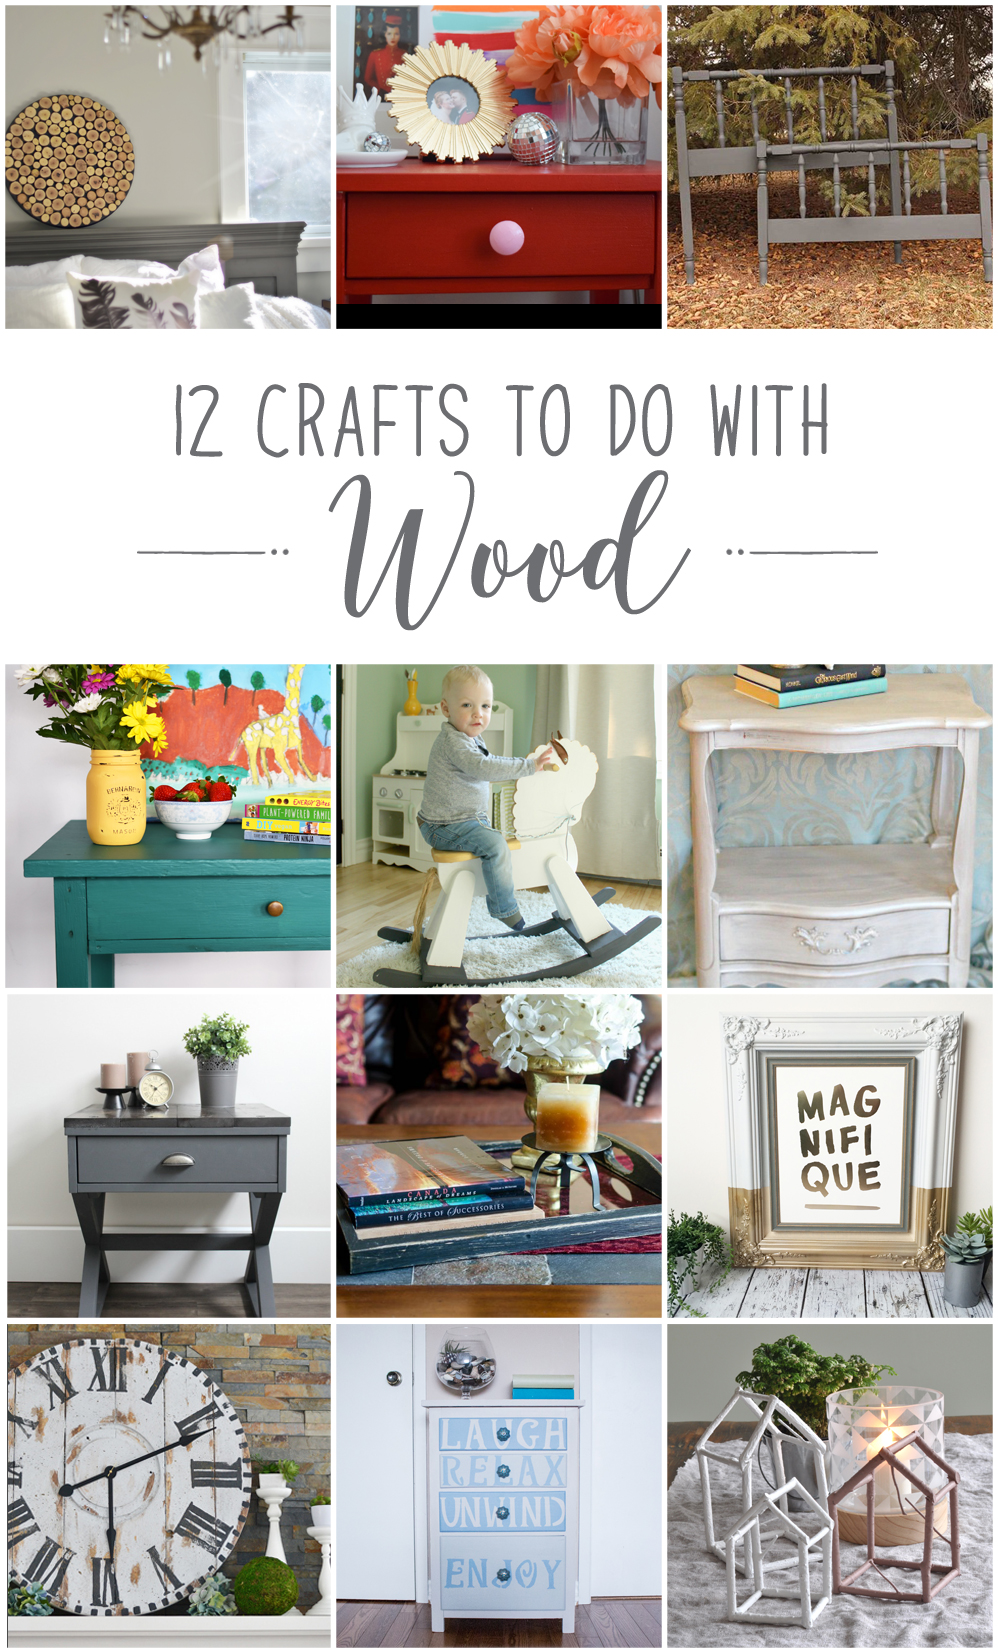 12 crafts to make with wood. These fantastic DIY home decor projects include upcycled dressers, side tables, a rocking horse, sliced wood accent decor and more. Click through for the links to all of these ideas.